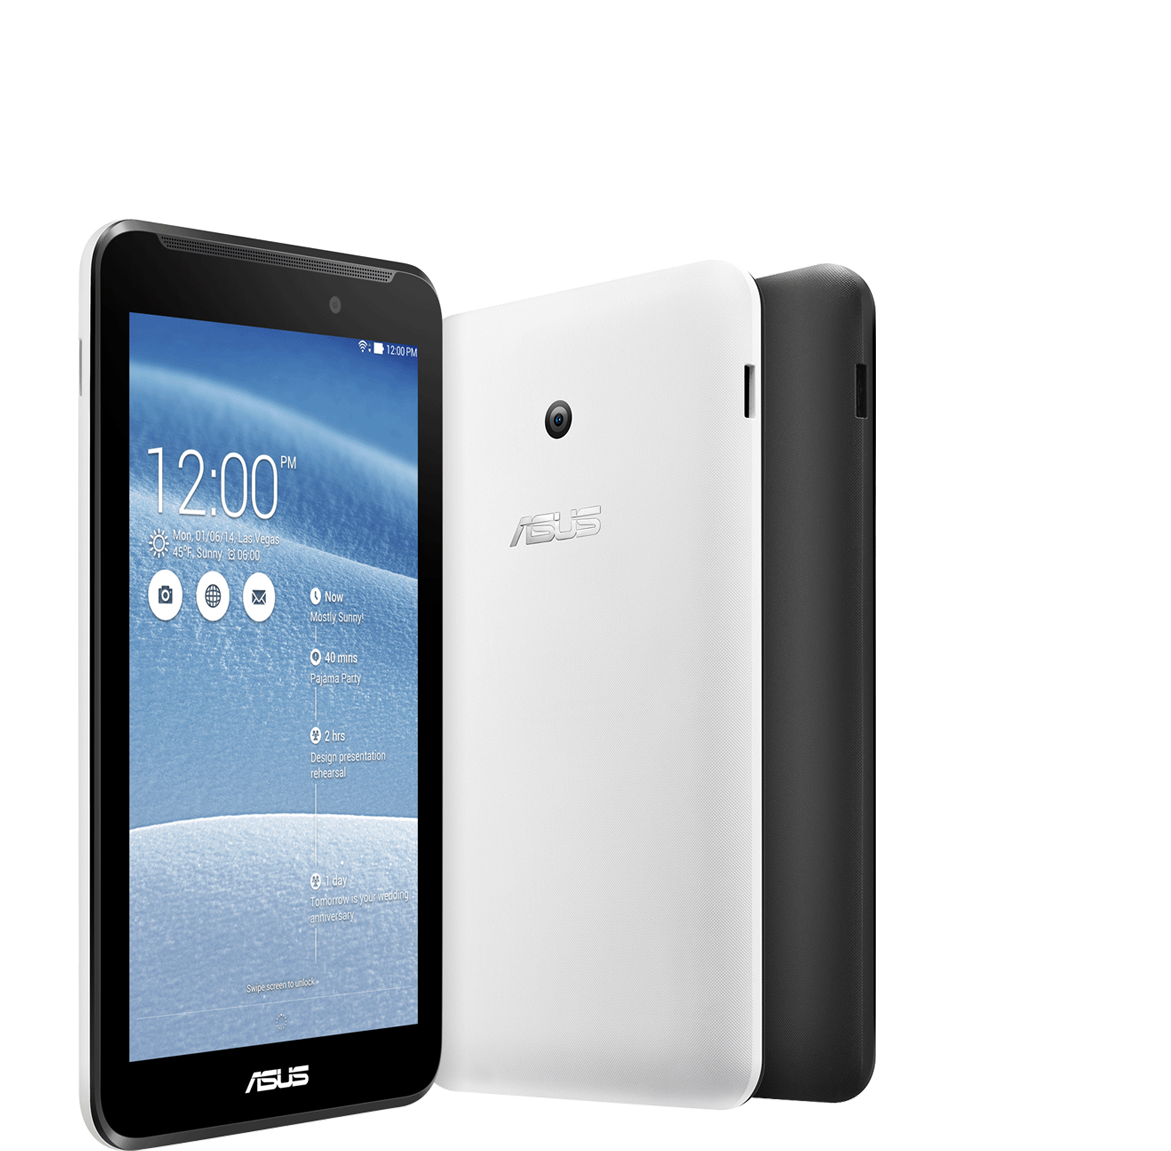 asus memo pad 7 me7000c tablettes asus france. Black Bedroom Furniture Sets. Home Design Ideas